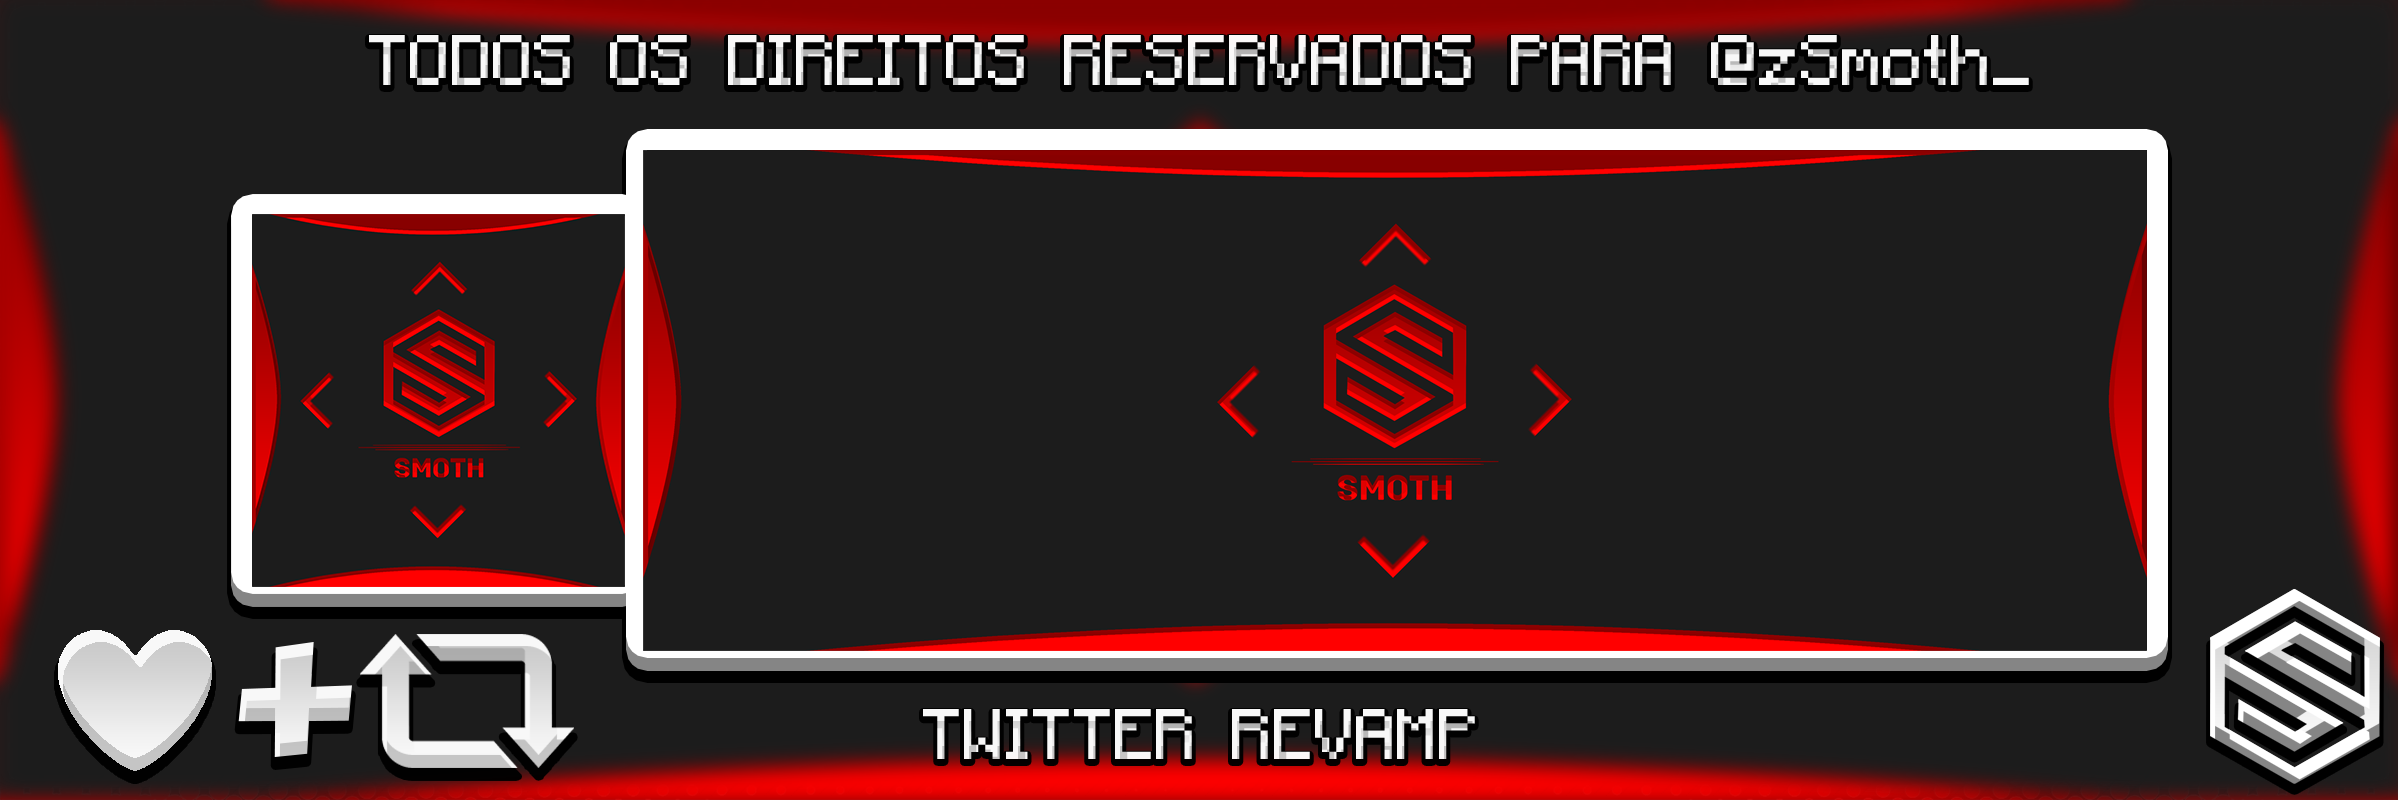 792116744_TwitterRevamp@zSmoth_.png.abe57258206cb7f02077c991cfe596bb.png